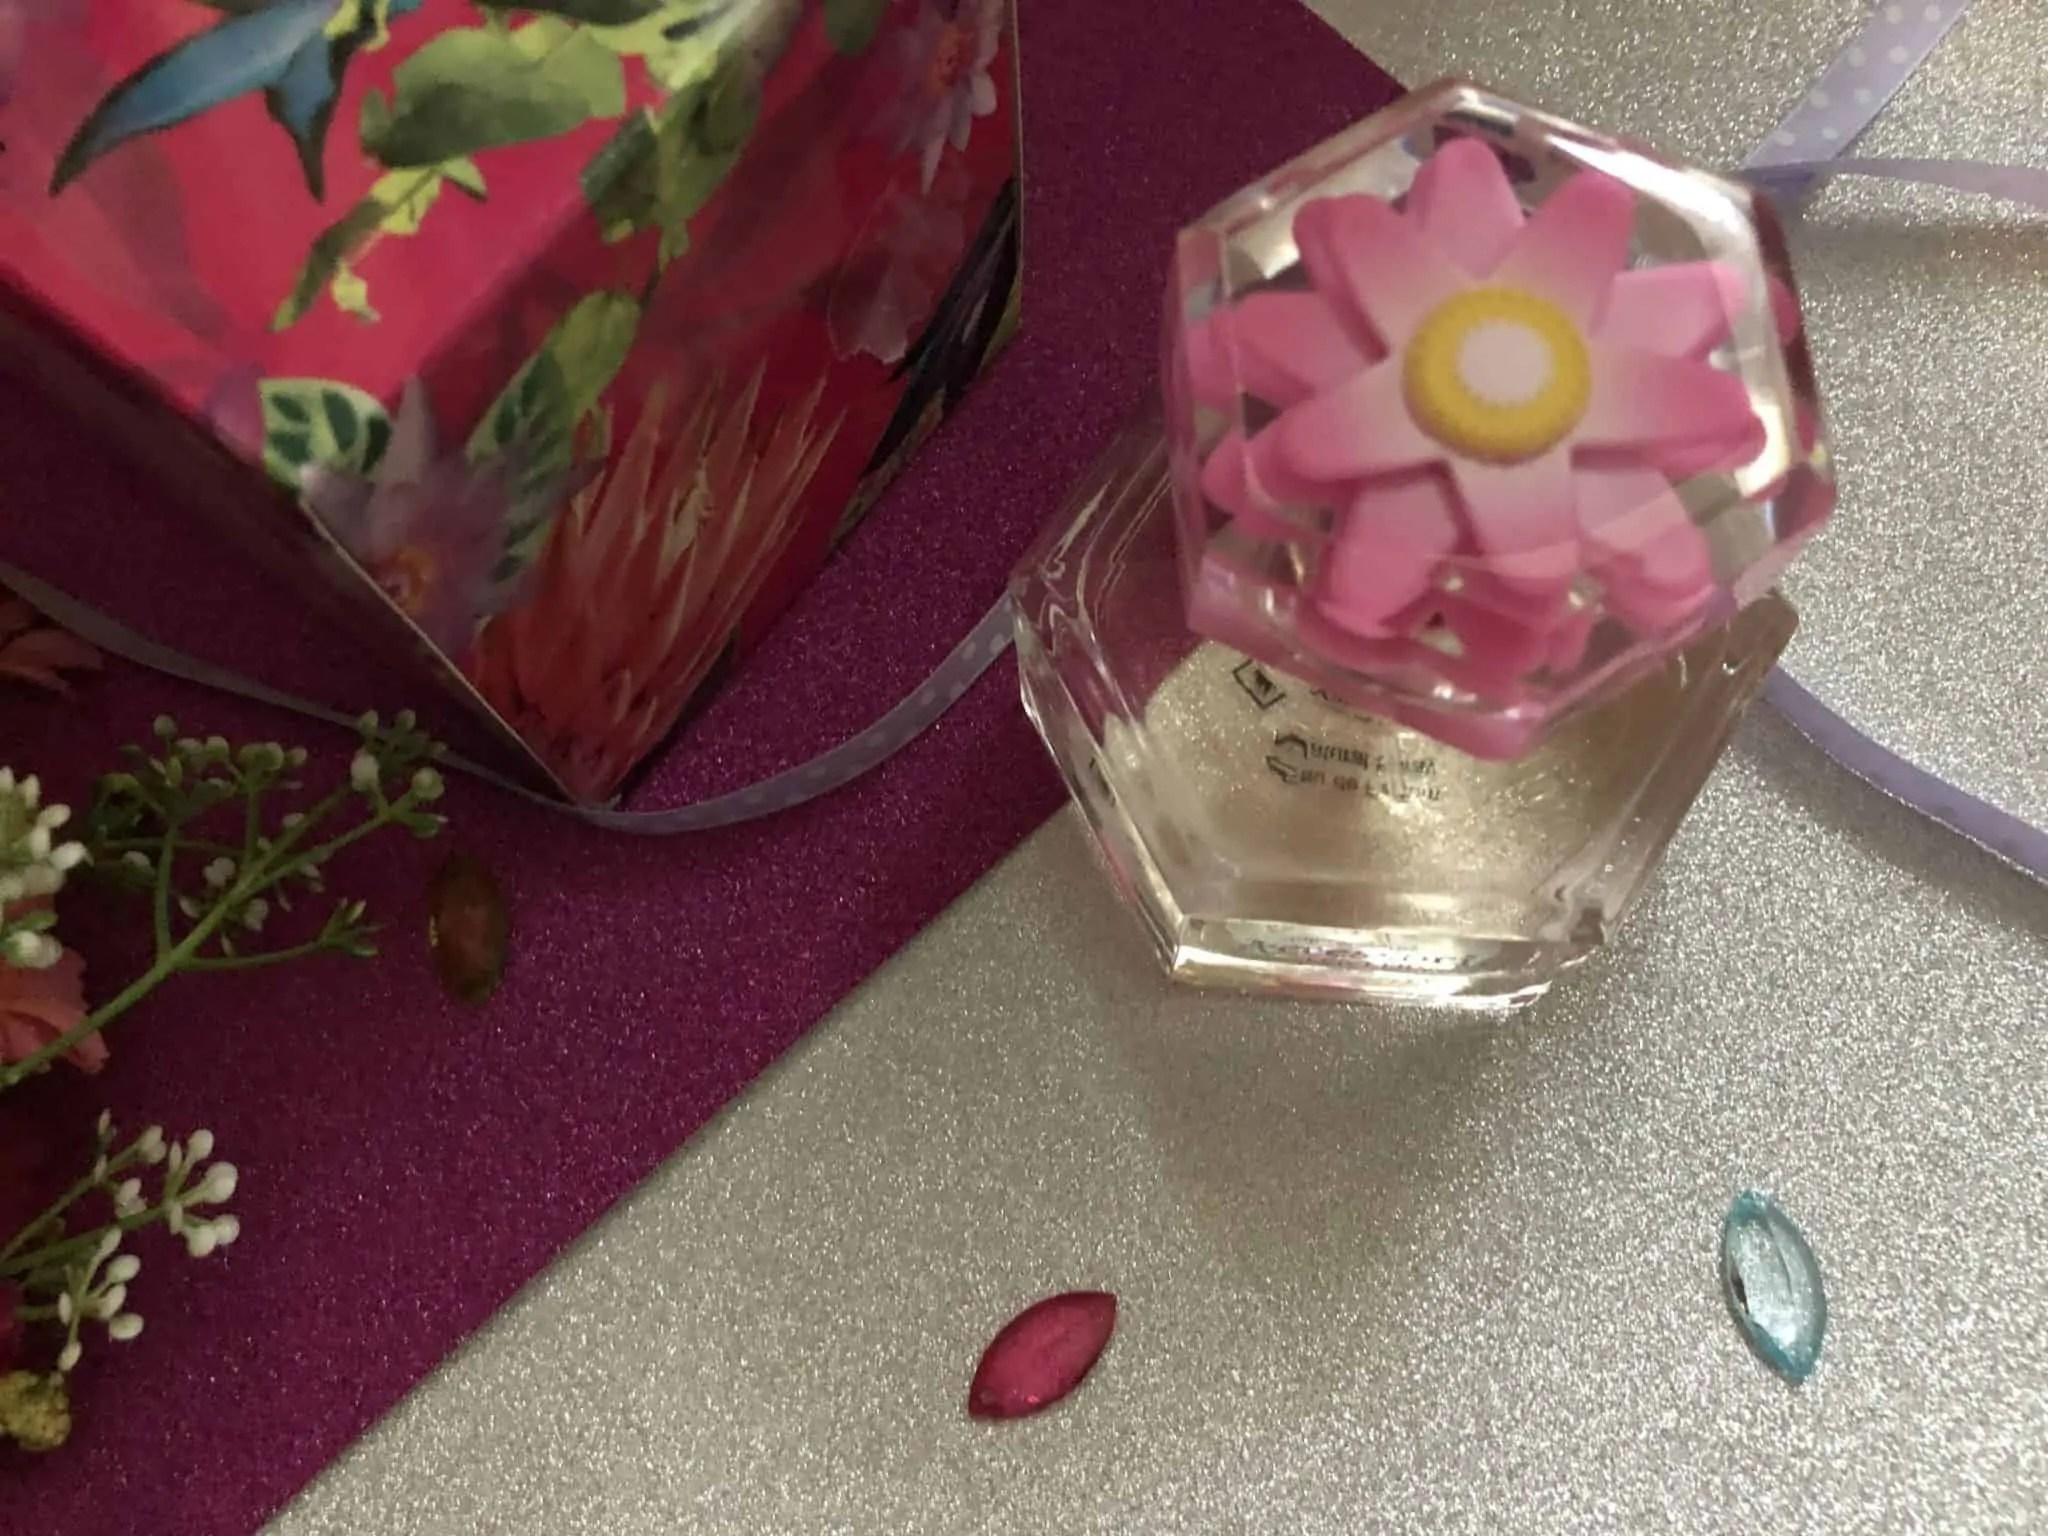 accessorize lovelily perfume decorative lid